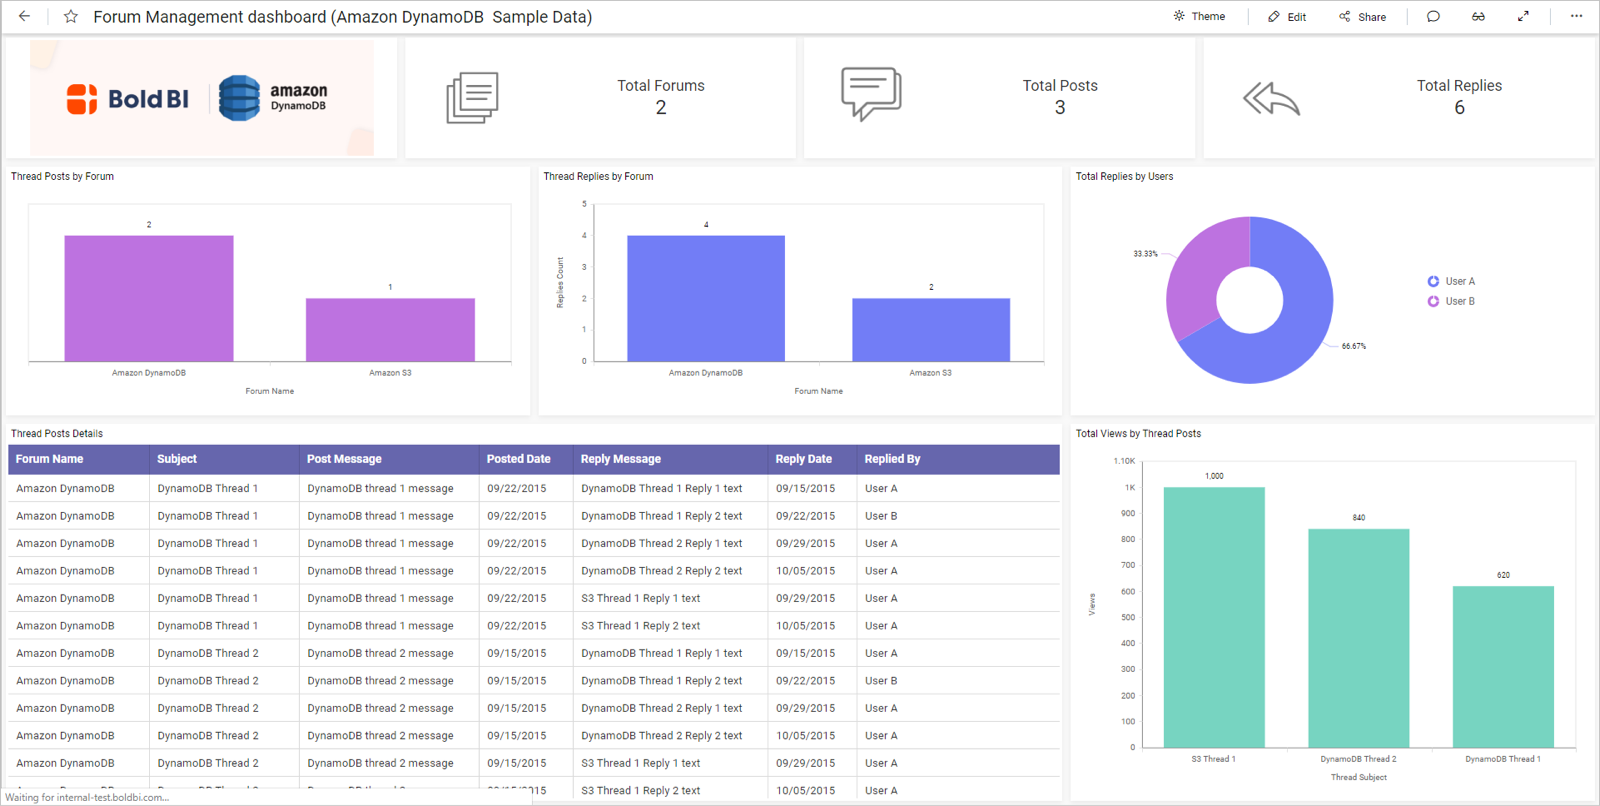 Forum Management dashboard